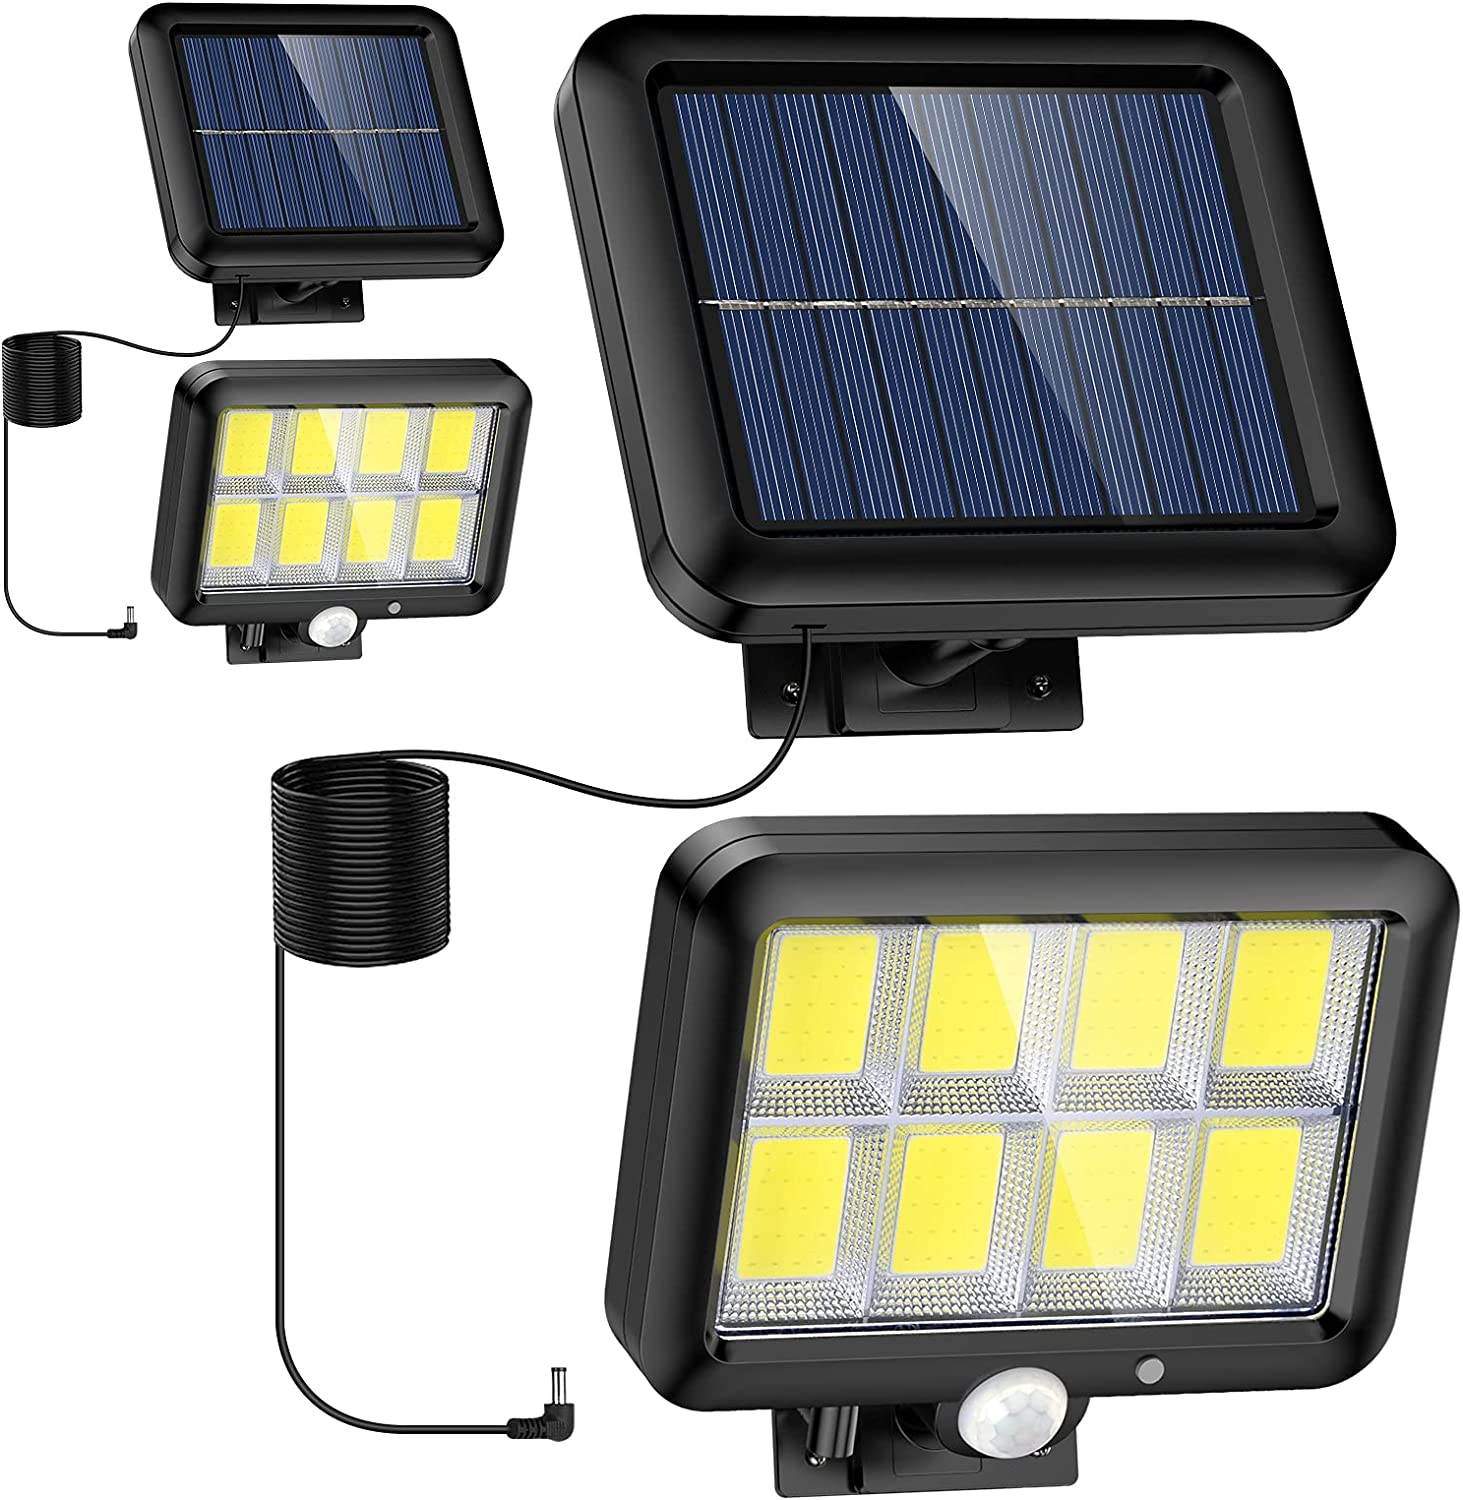 Solar Lights Outdoor- 2 Pack, 320 COB LED, 3 Modes Motion Sensor Security Light with 16.4Ft Cable, IP65 Waterproof Wall Lights for Garage Garden Yard Pathway